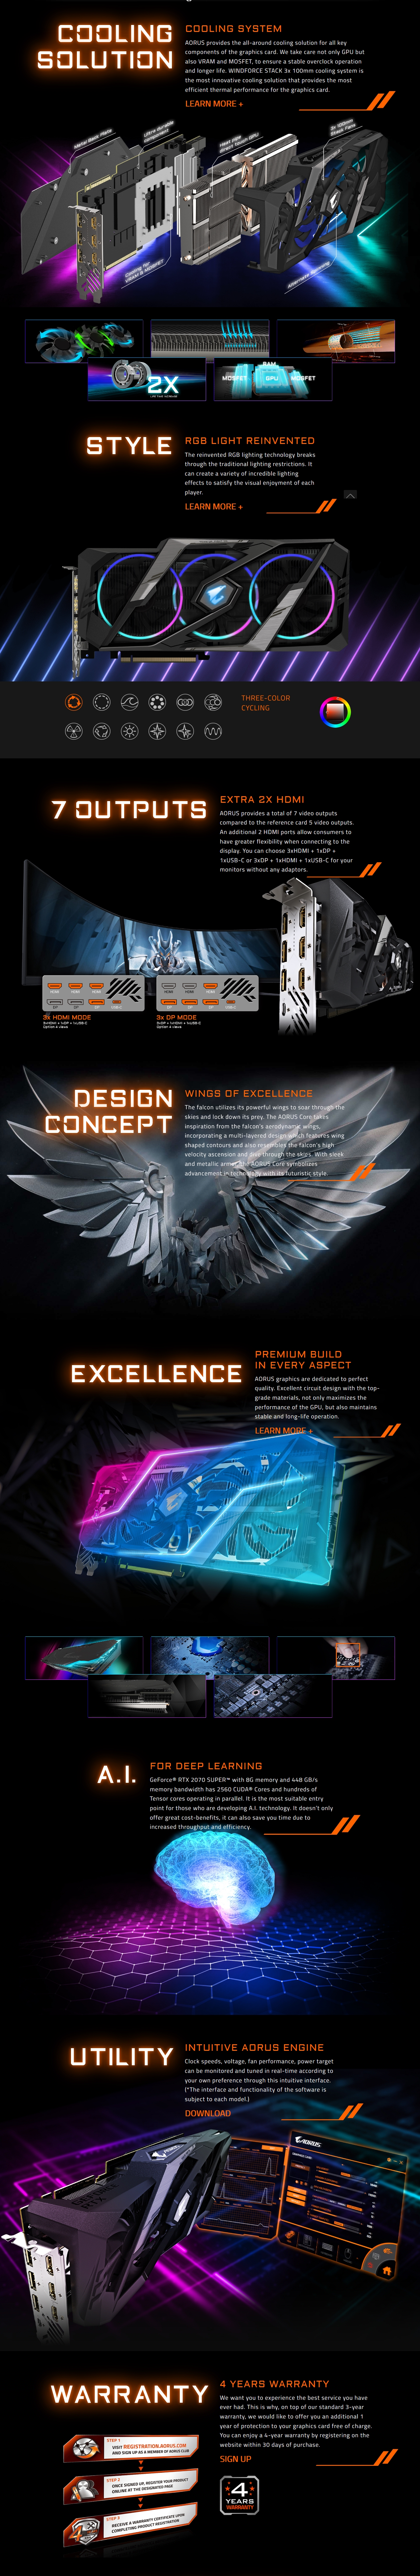 A large marketing image providing additional information about the product Gigabyte GeForce RTX2070 Super Aorus 8GB GDDR6 - Additional alt info not provided